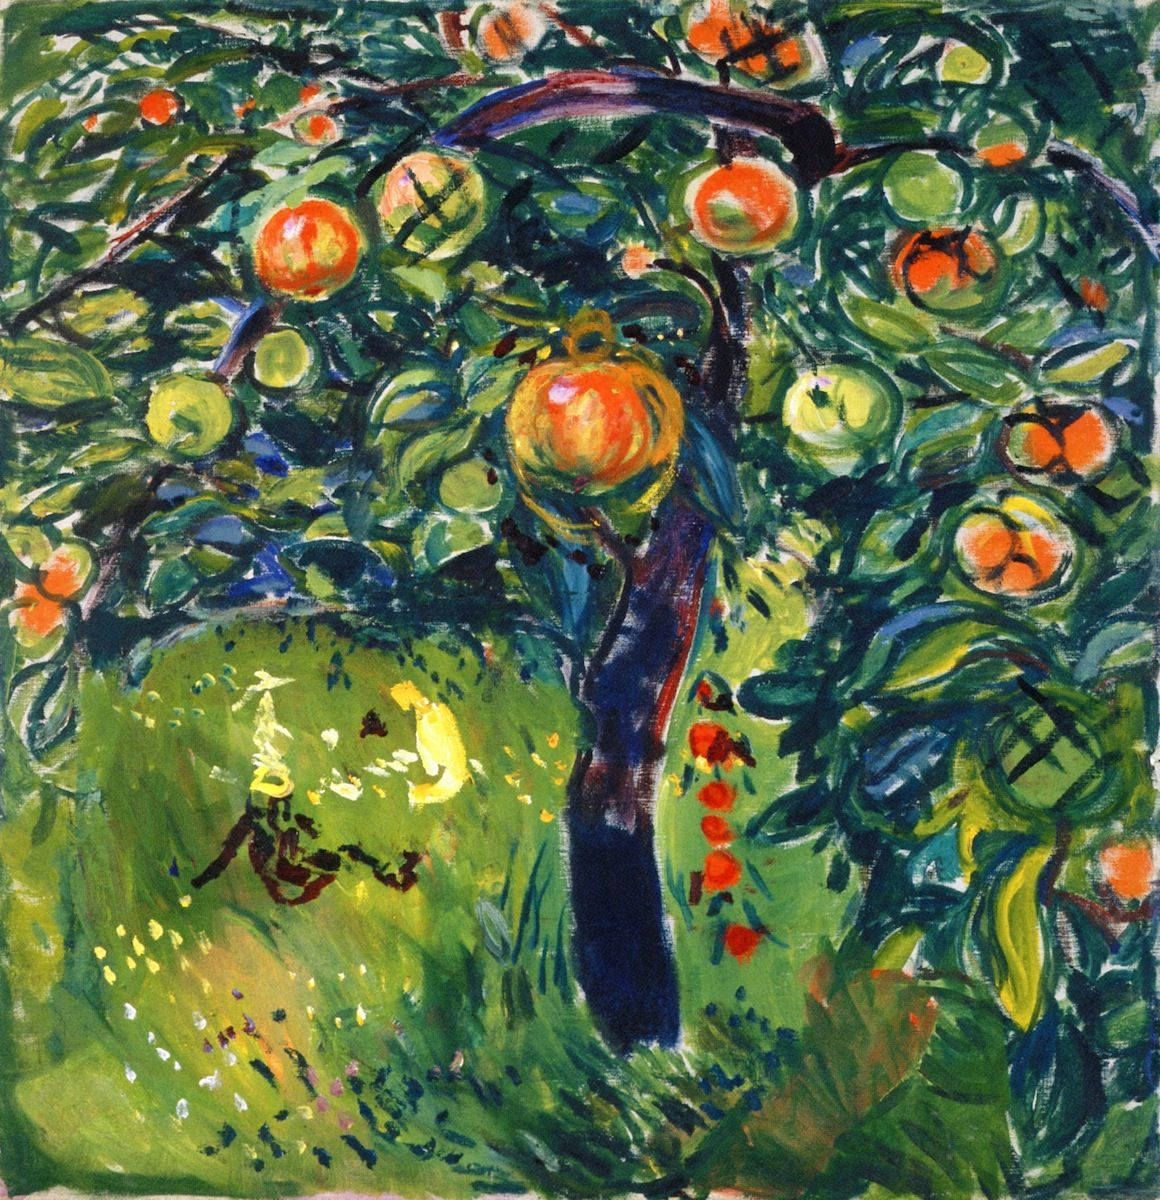 Munch Cuadros Apple Tree Edvard Munch Artist A Munch Edvard Pinterest